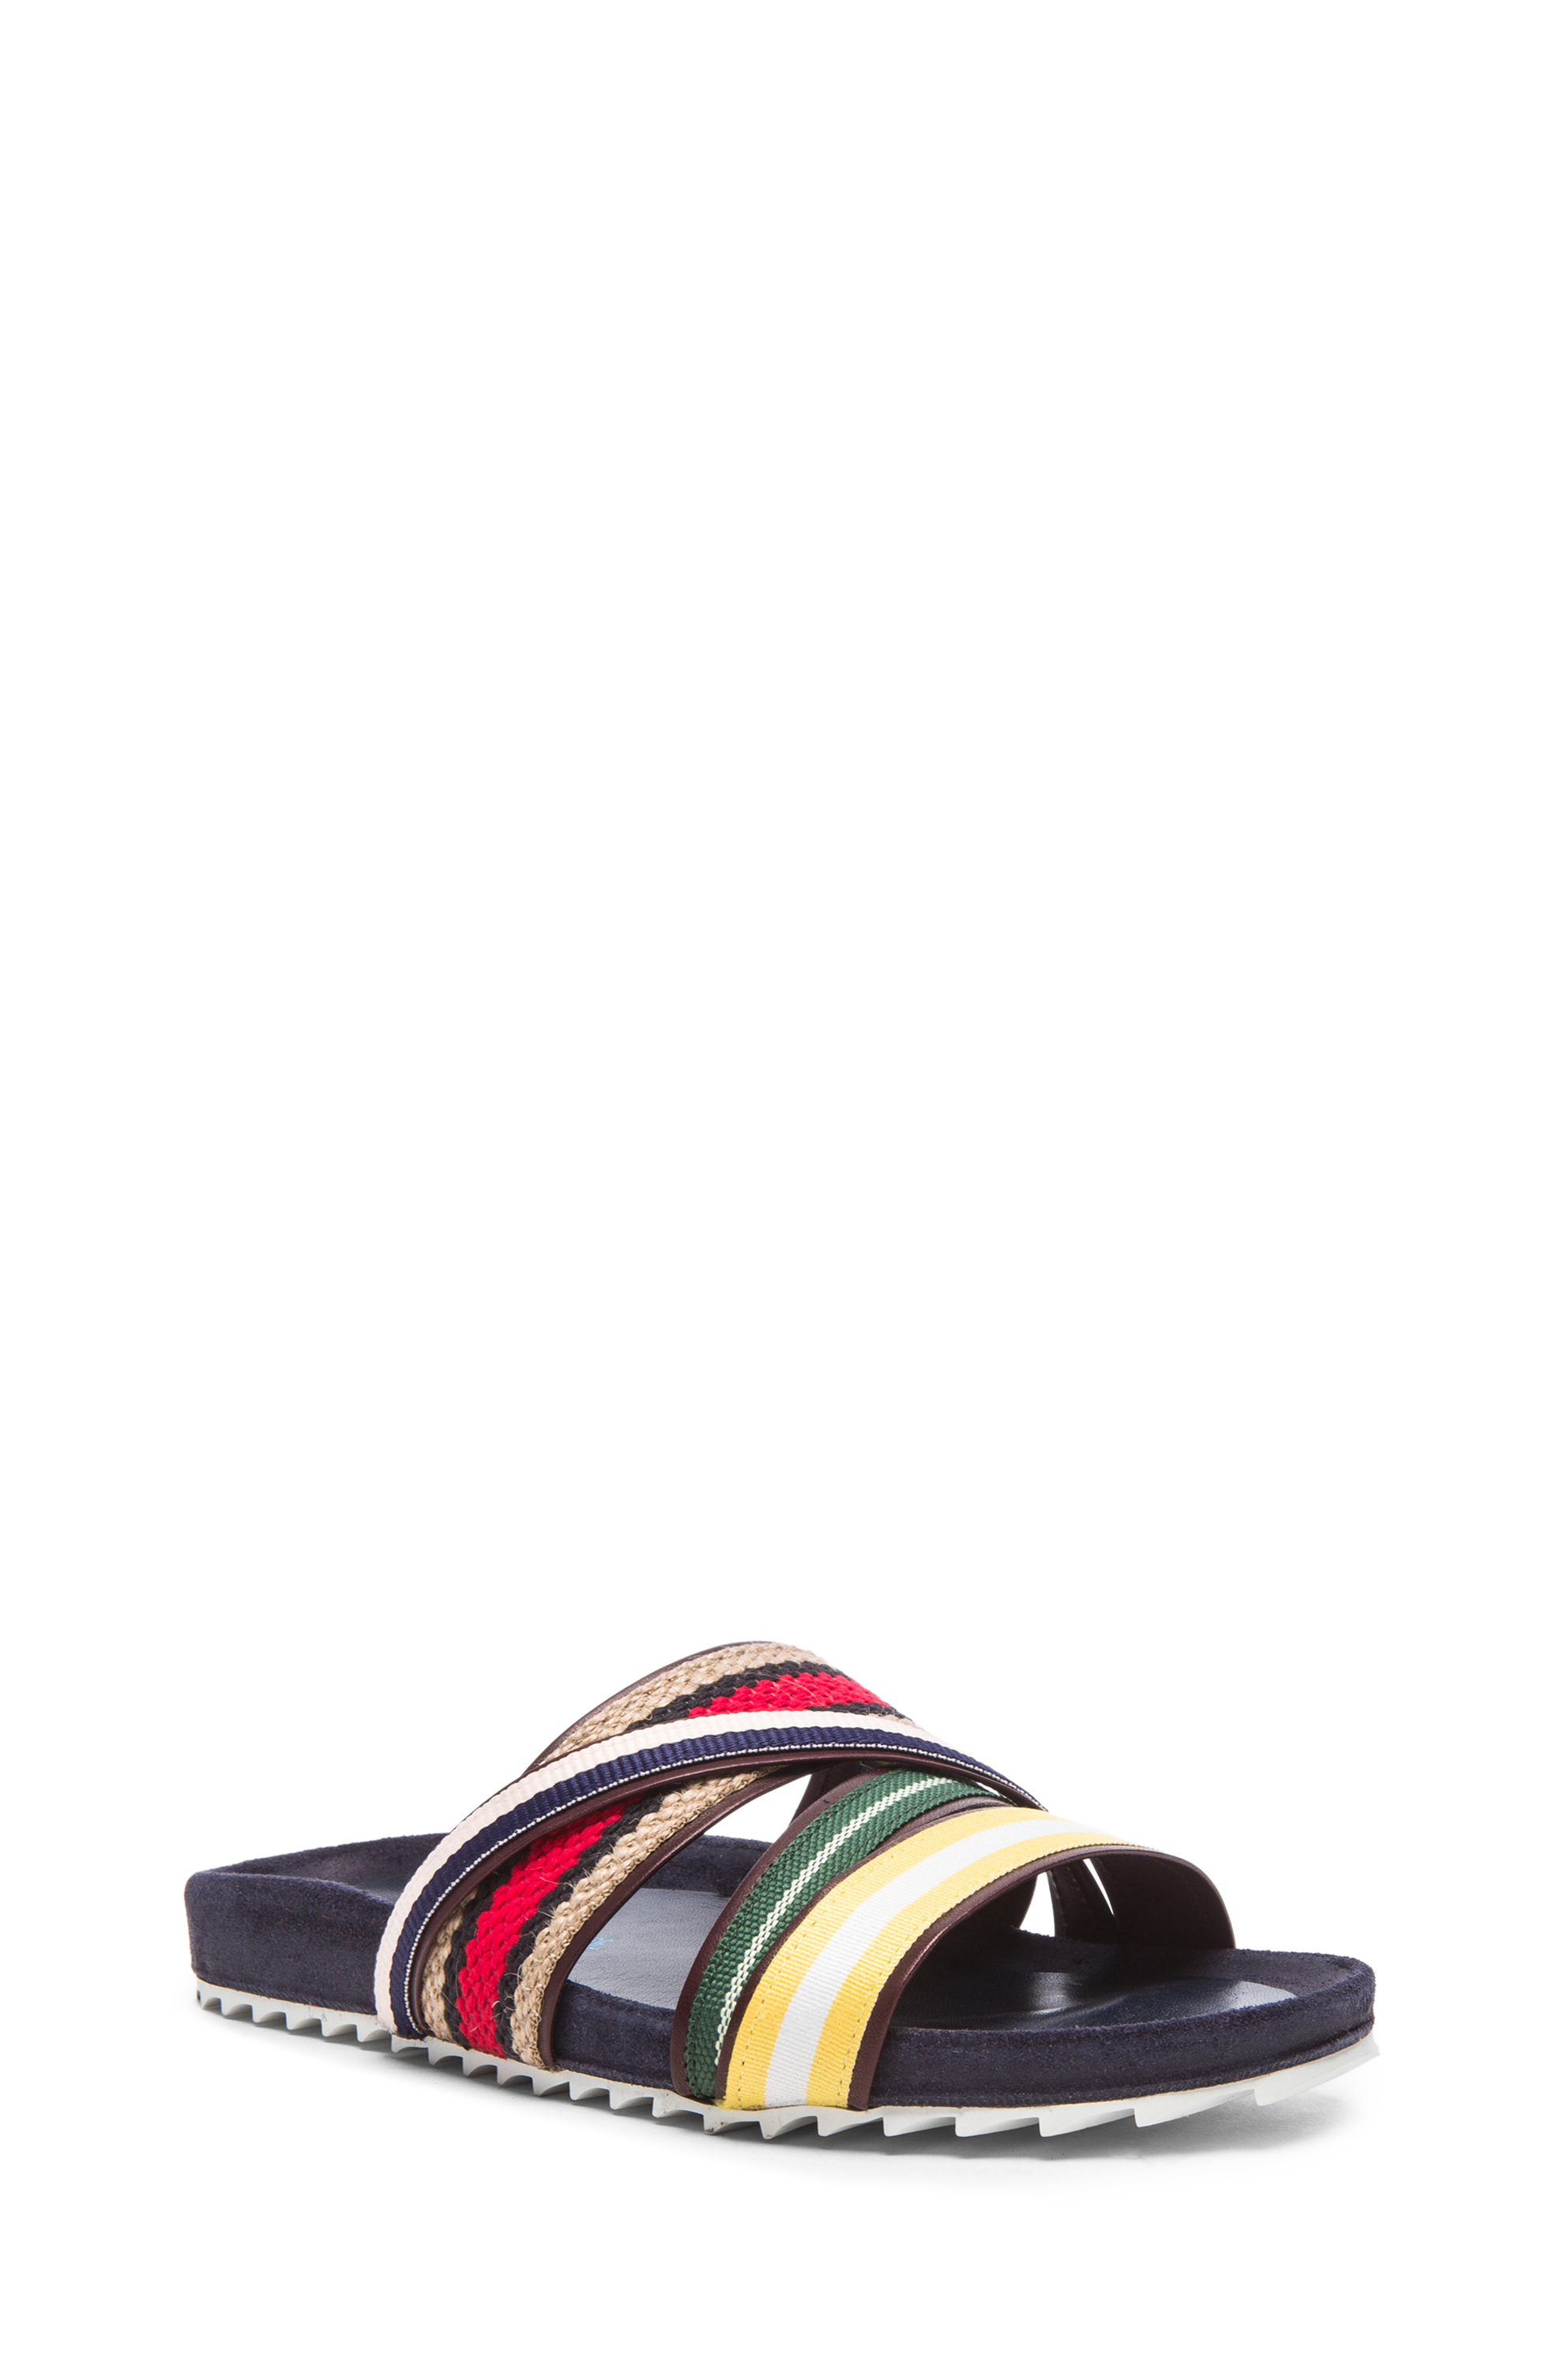 70b73634f1d0 Lyst - Band of Outsiders Strappy Shower Fabric Slides